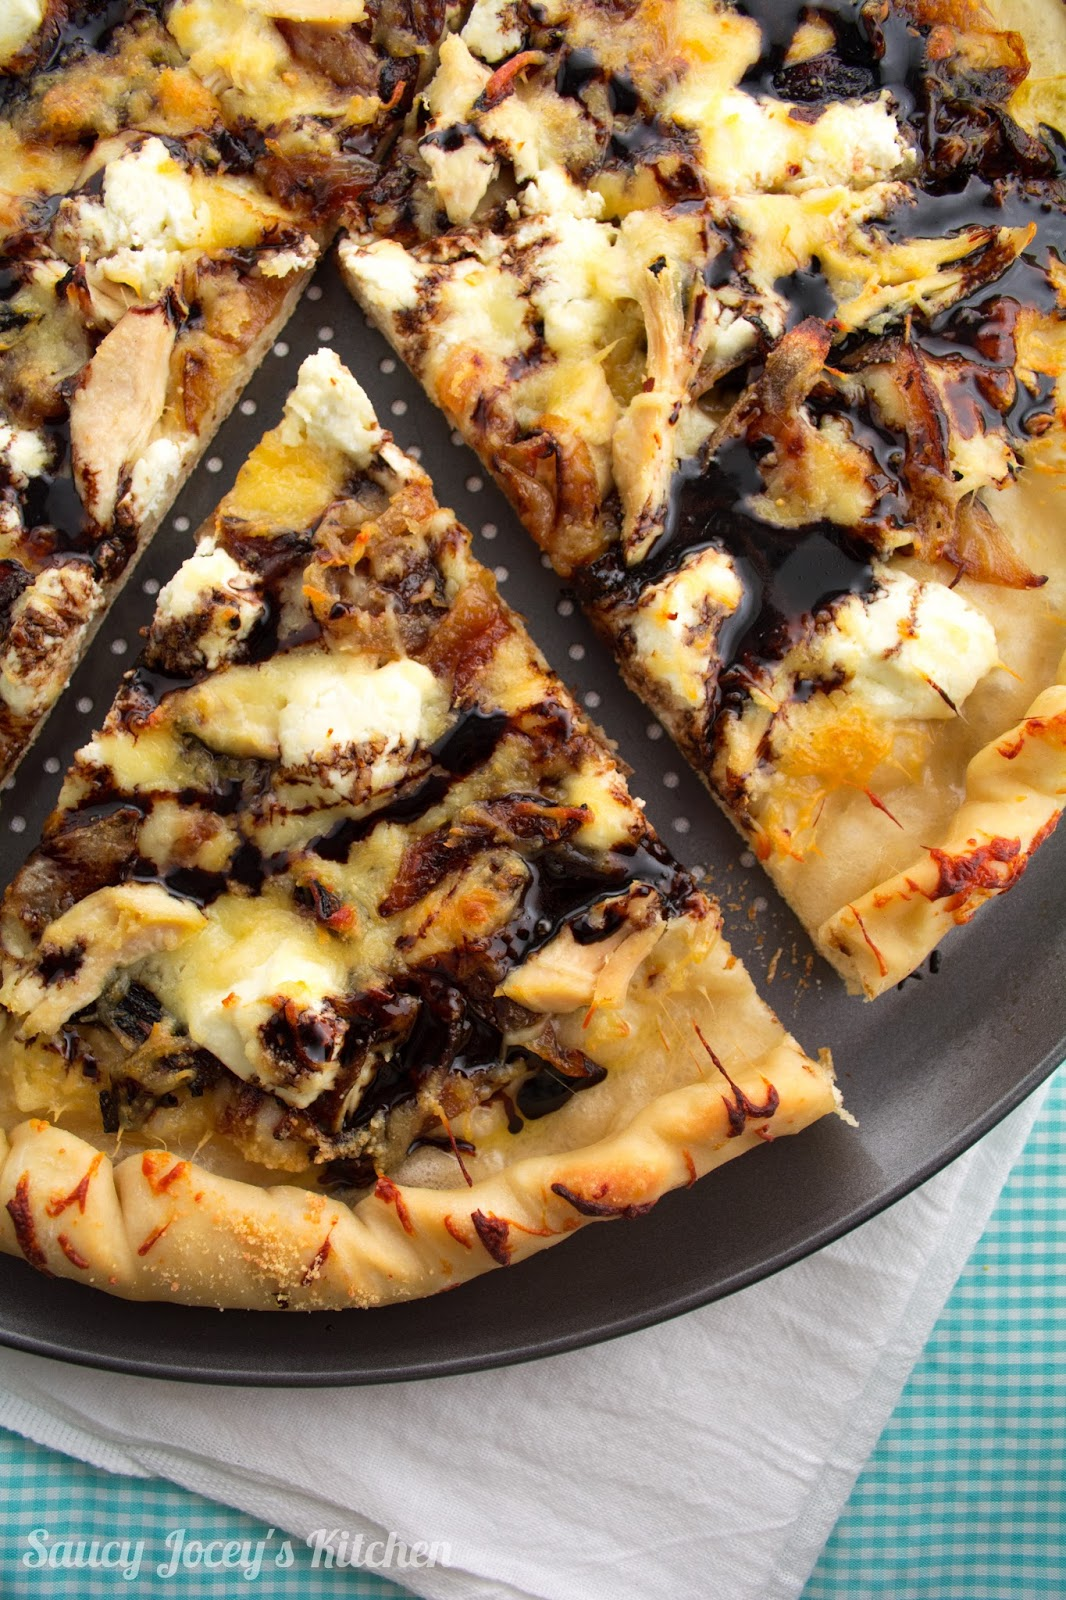 Saucy Jocey S Kitchen White Pizza With Balsamic Glaze